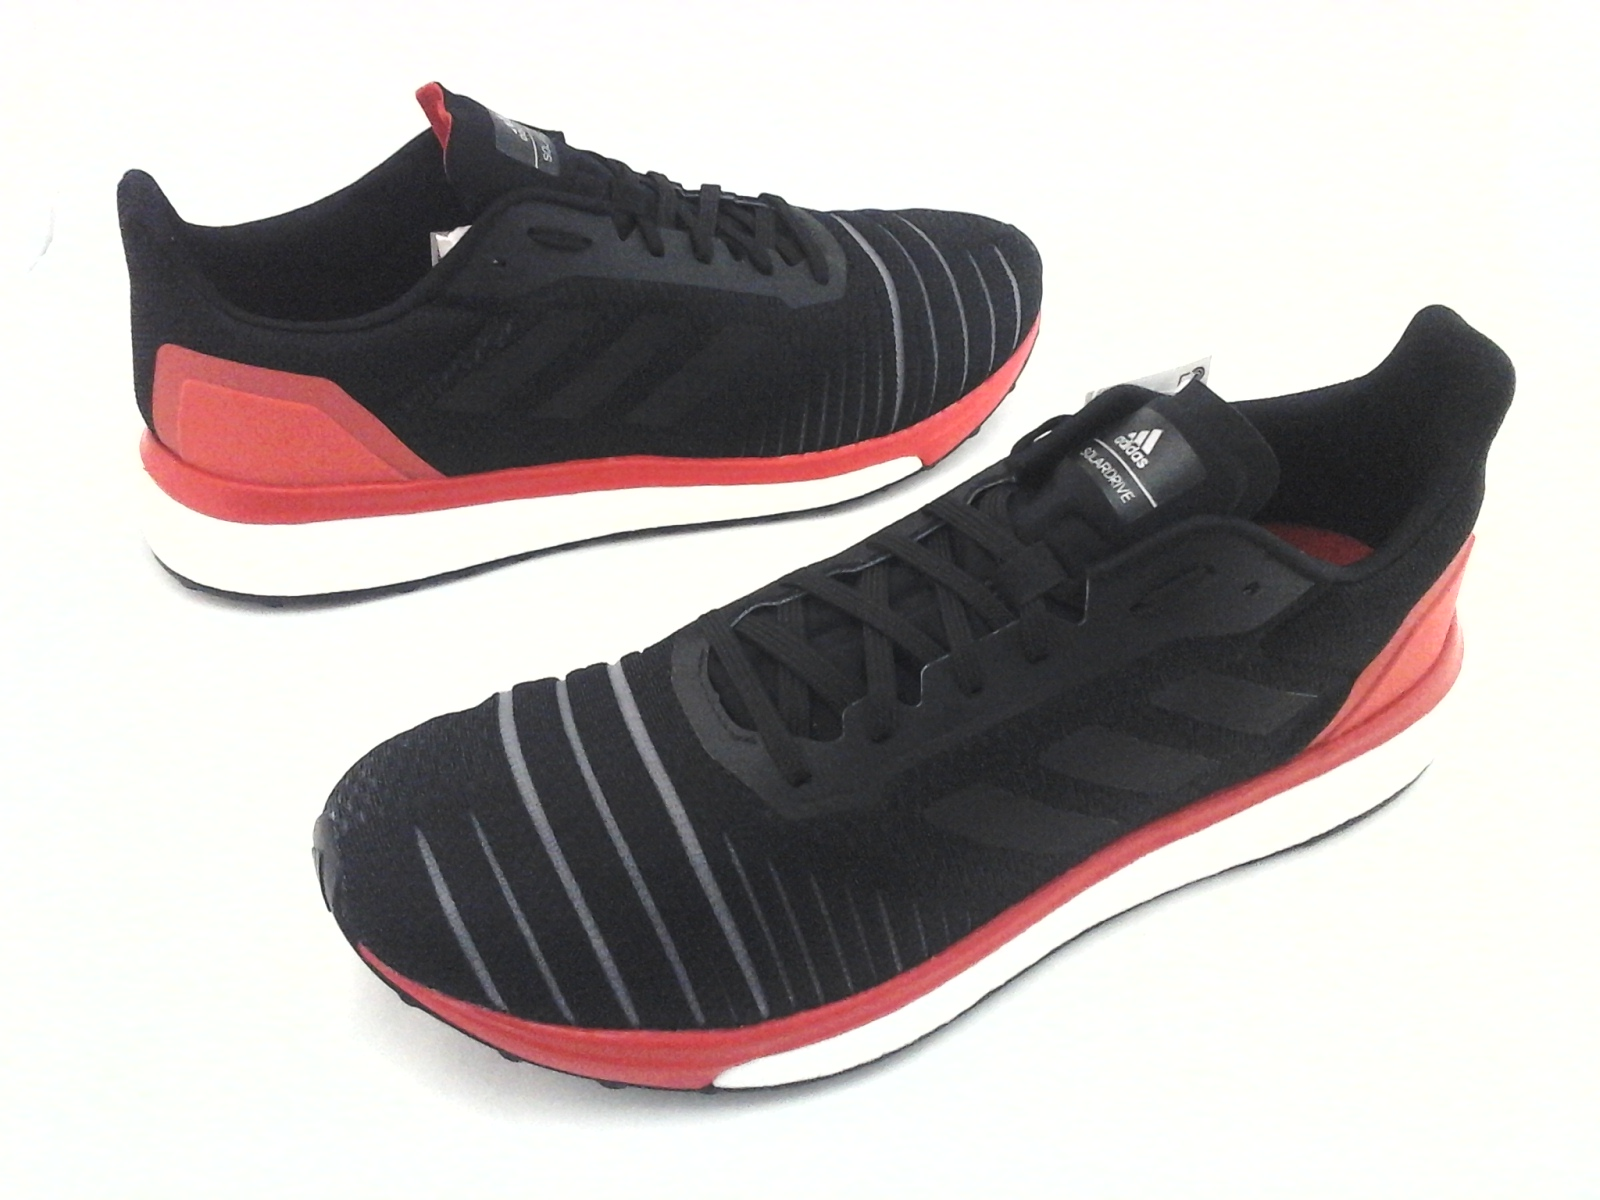 38c8ed8bf ADIDAS Boost Running Shoes Solar Drive Black Red White AC8134 Mens ...